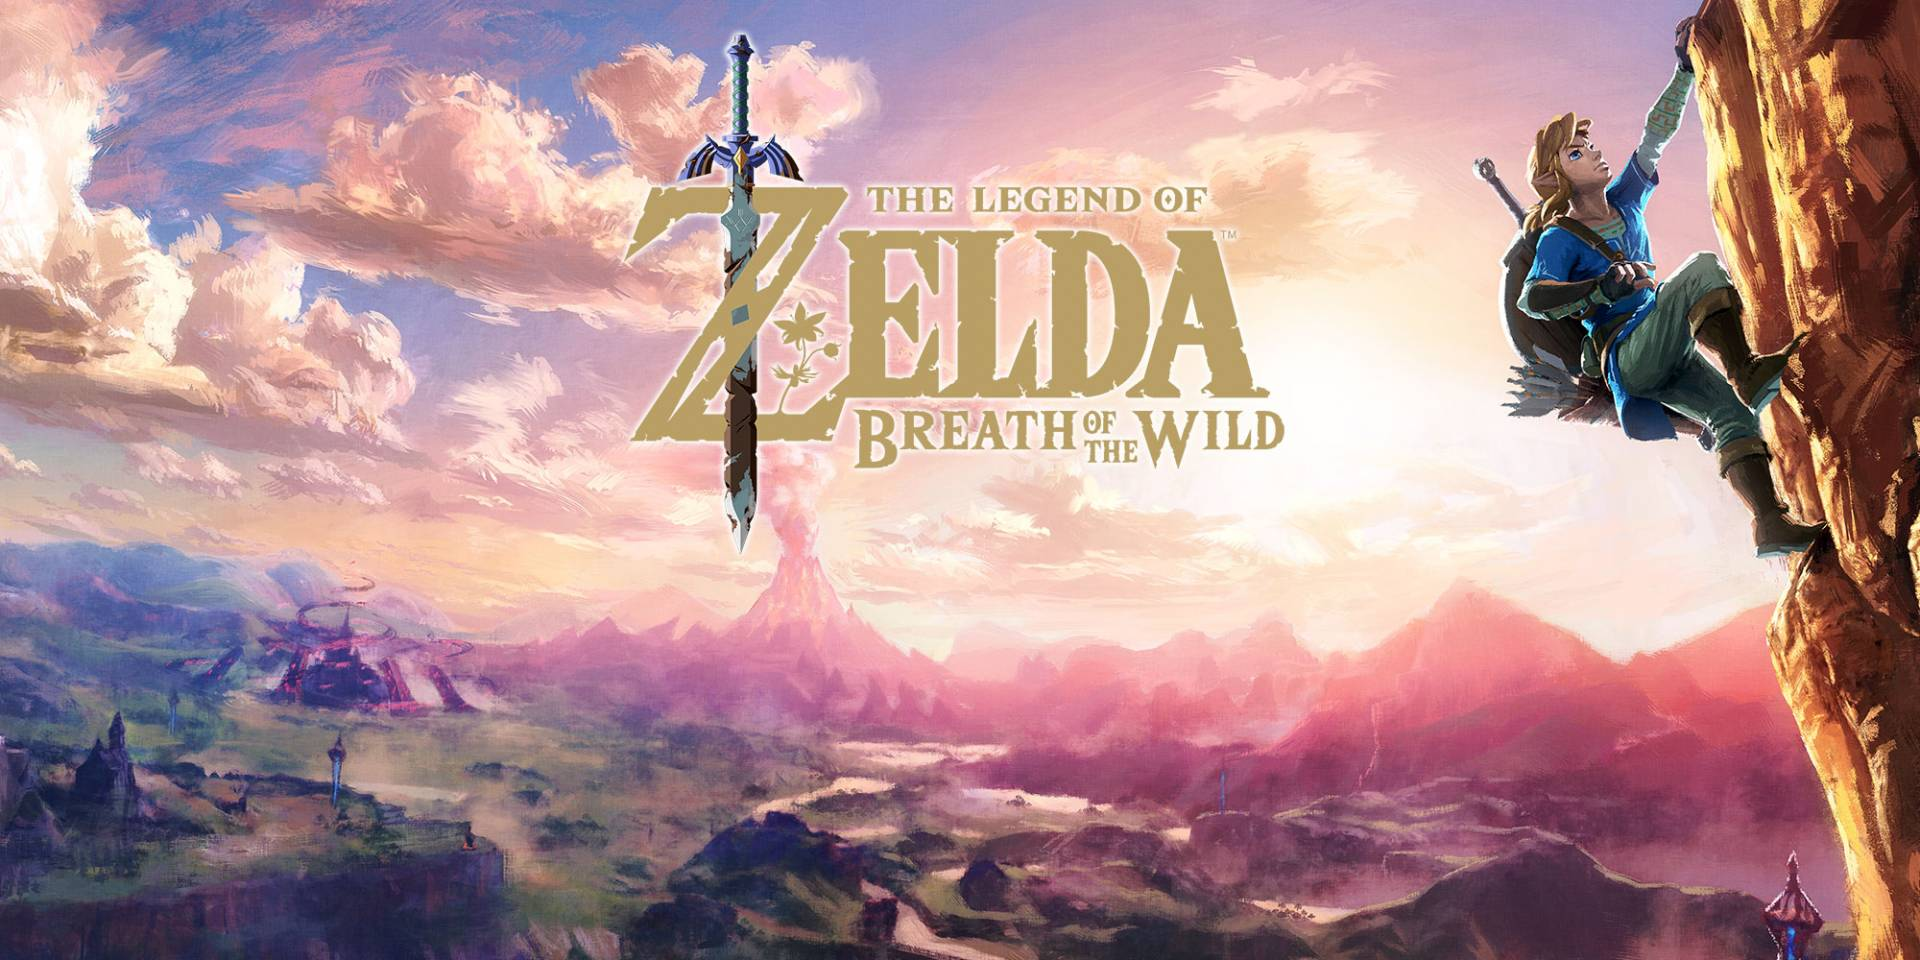 Last Friday, Nintendo released The Legend of Zelda: Breath of the Wild's first DLC. Image credit: Nintendo / Forbes